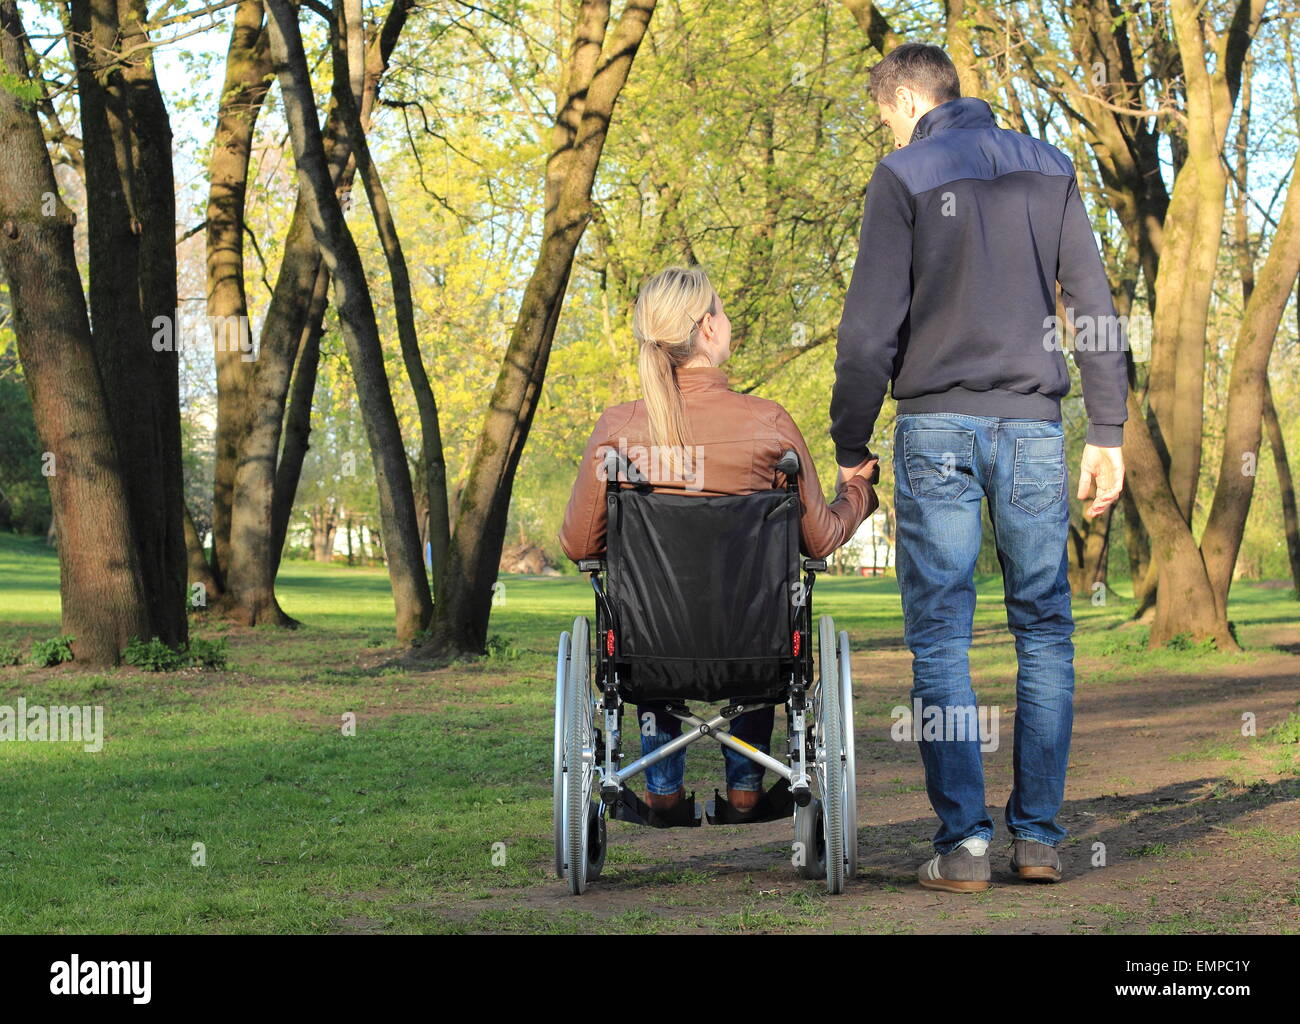 A Lovers couple in wheelchair and not handicapped - Stock Image